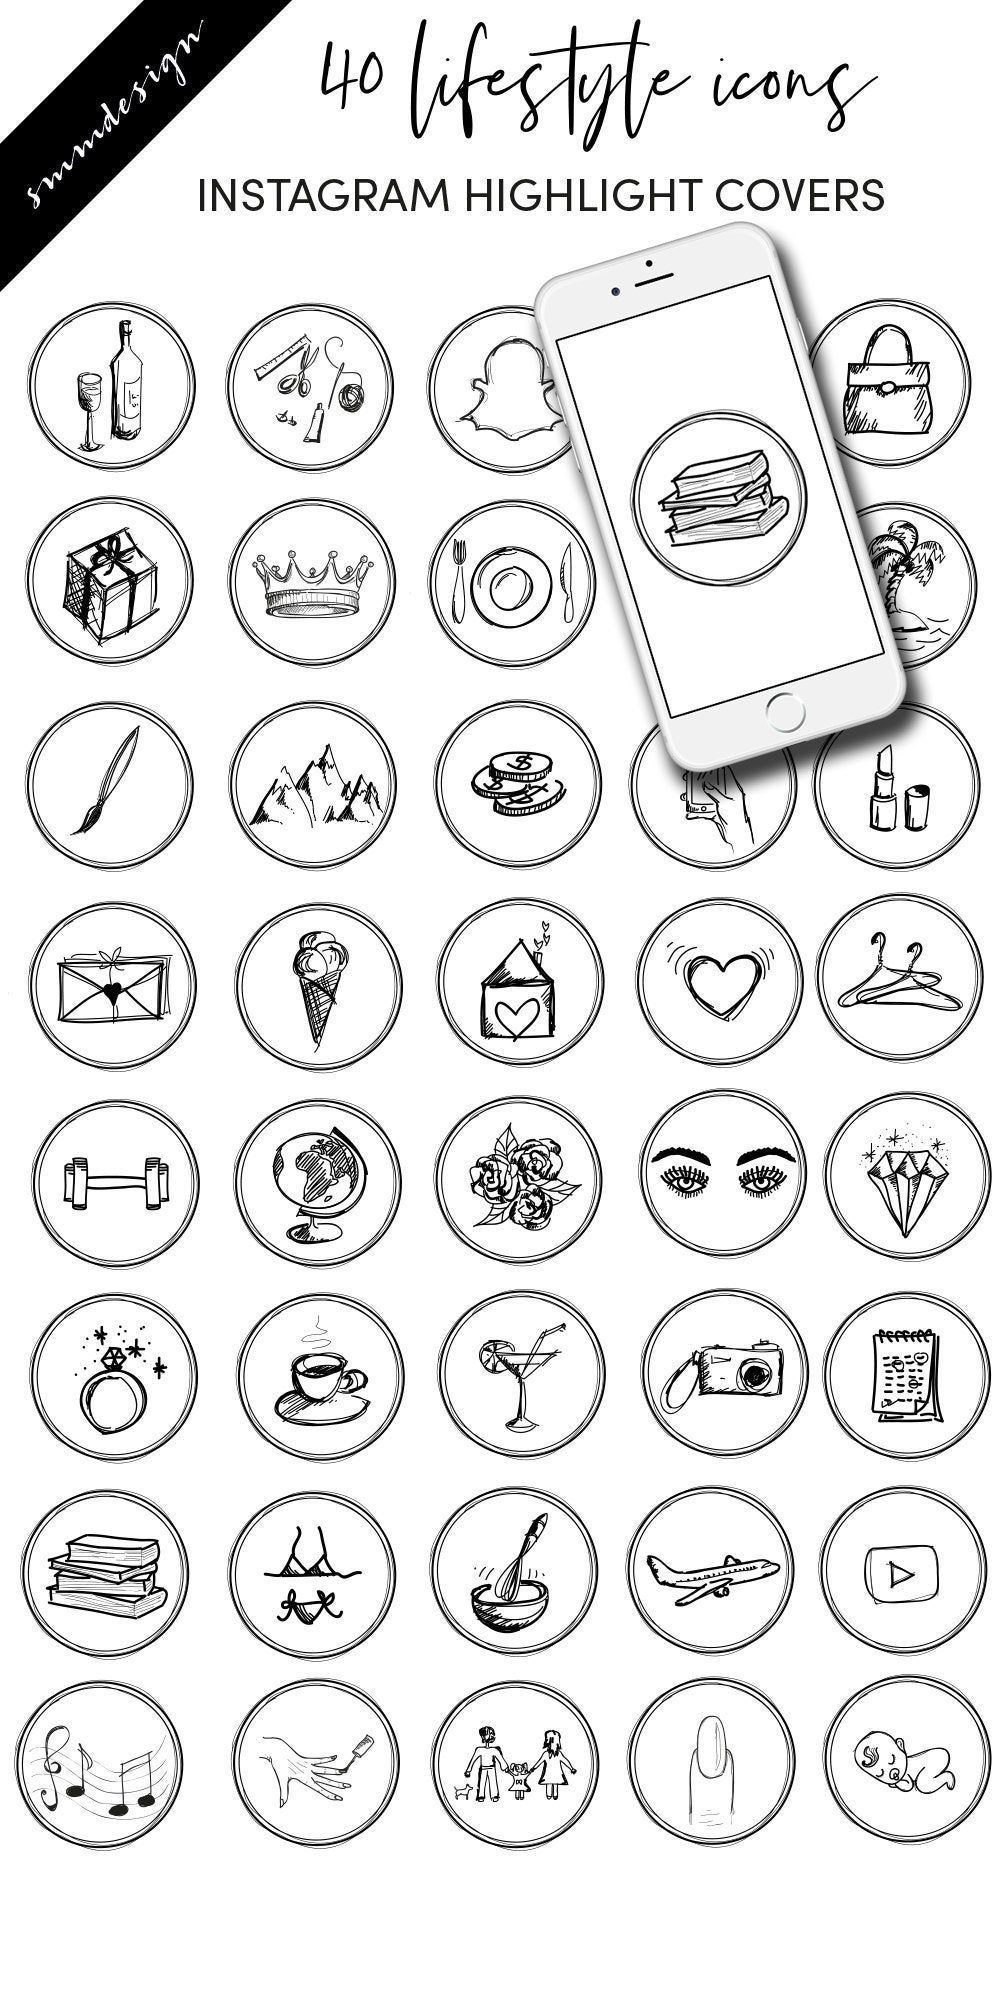 Instagram story highlight icons lifestyle, hand drawn